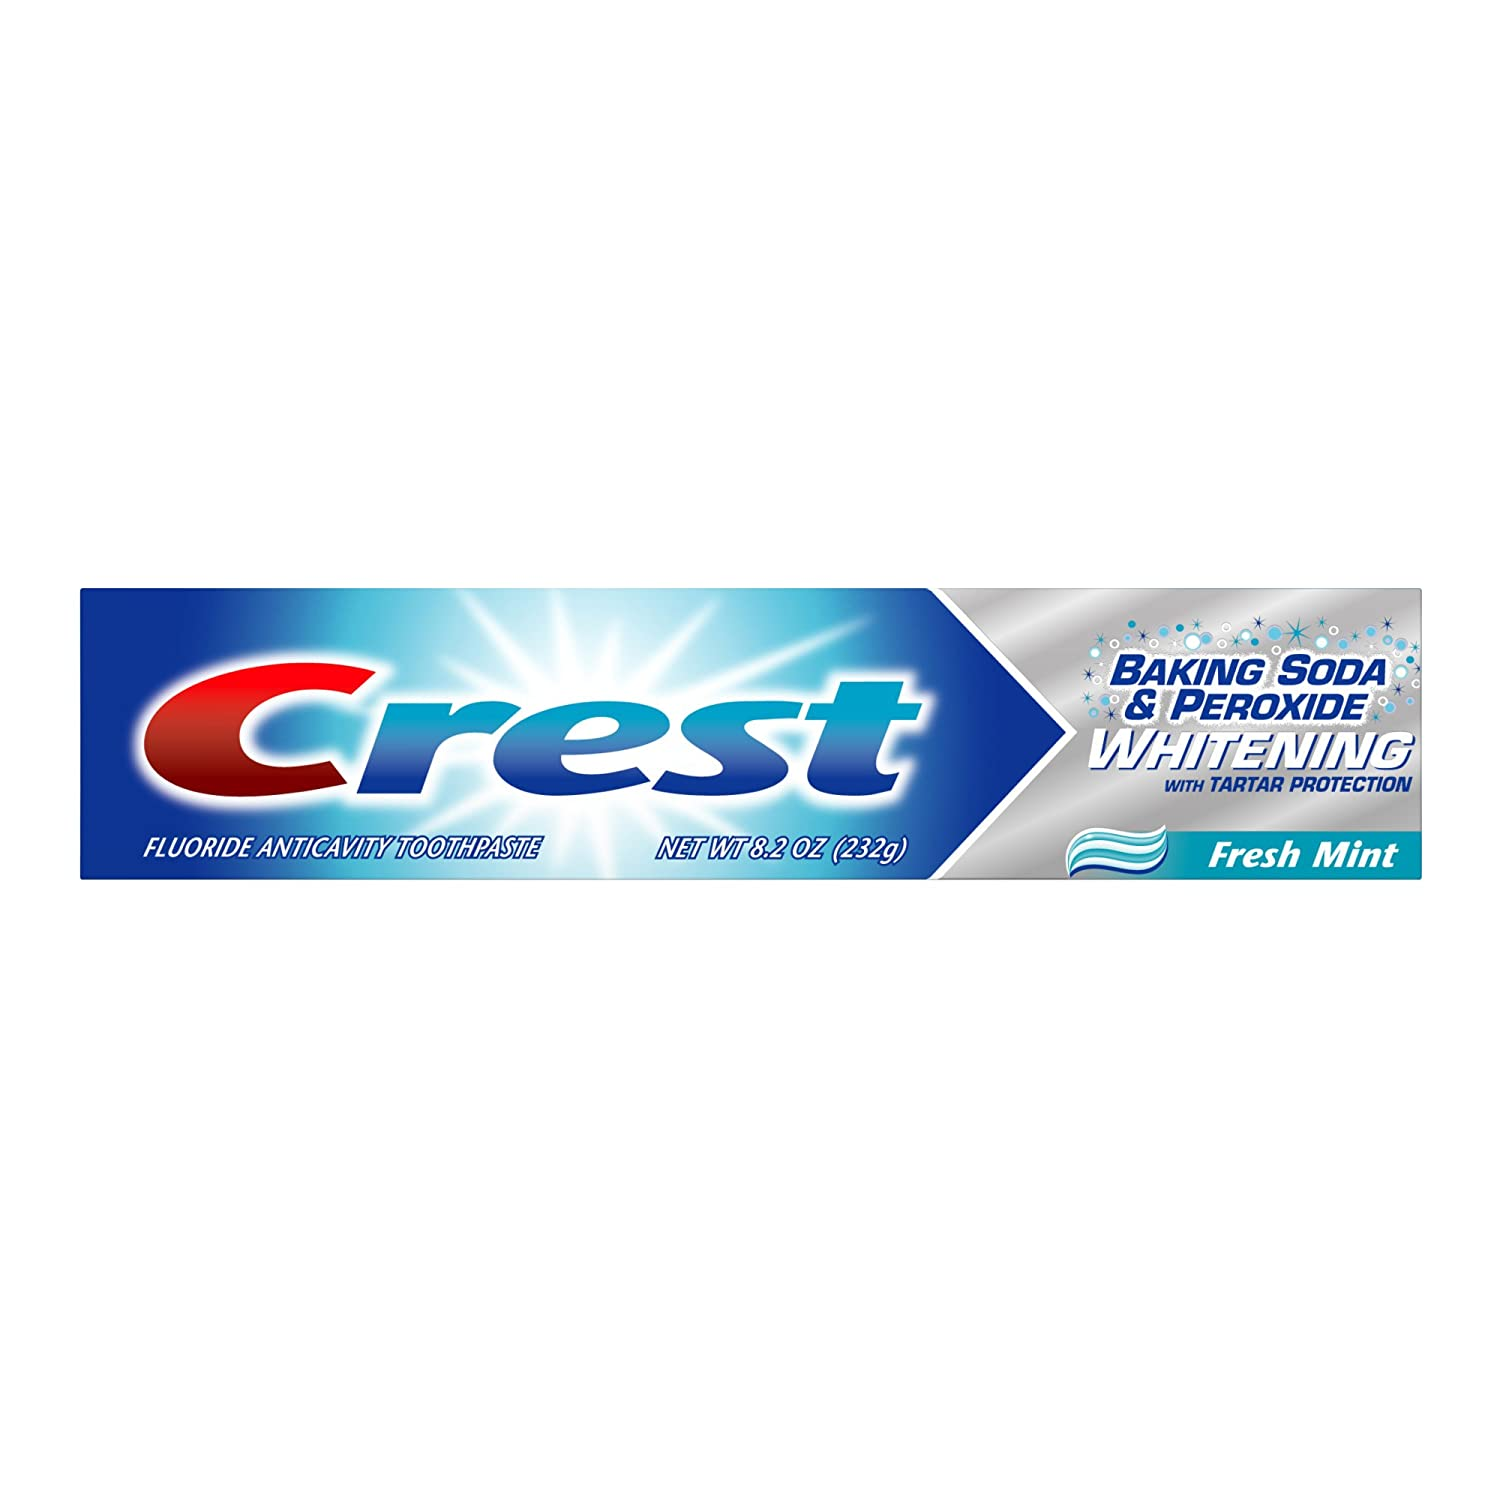 Crest Baking Fixed price for sale Soda And Peroxide Whitening Popular Protection Tartar With